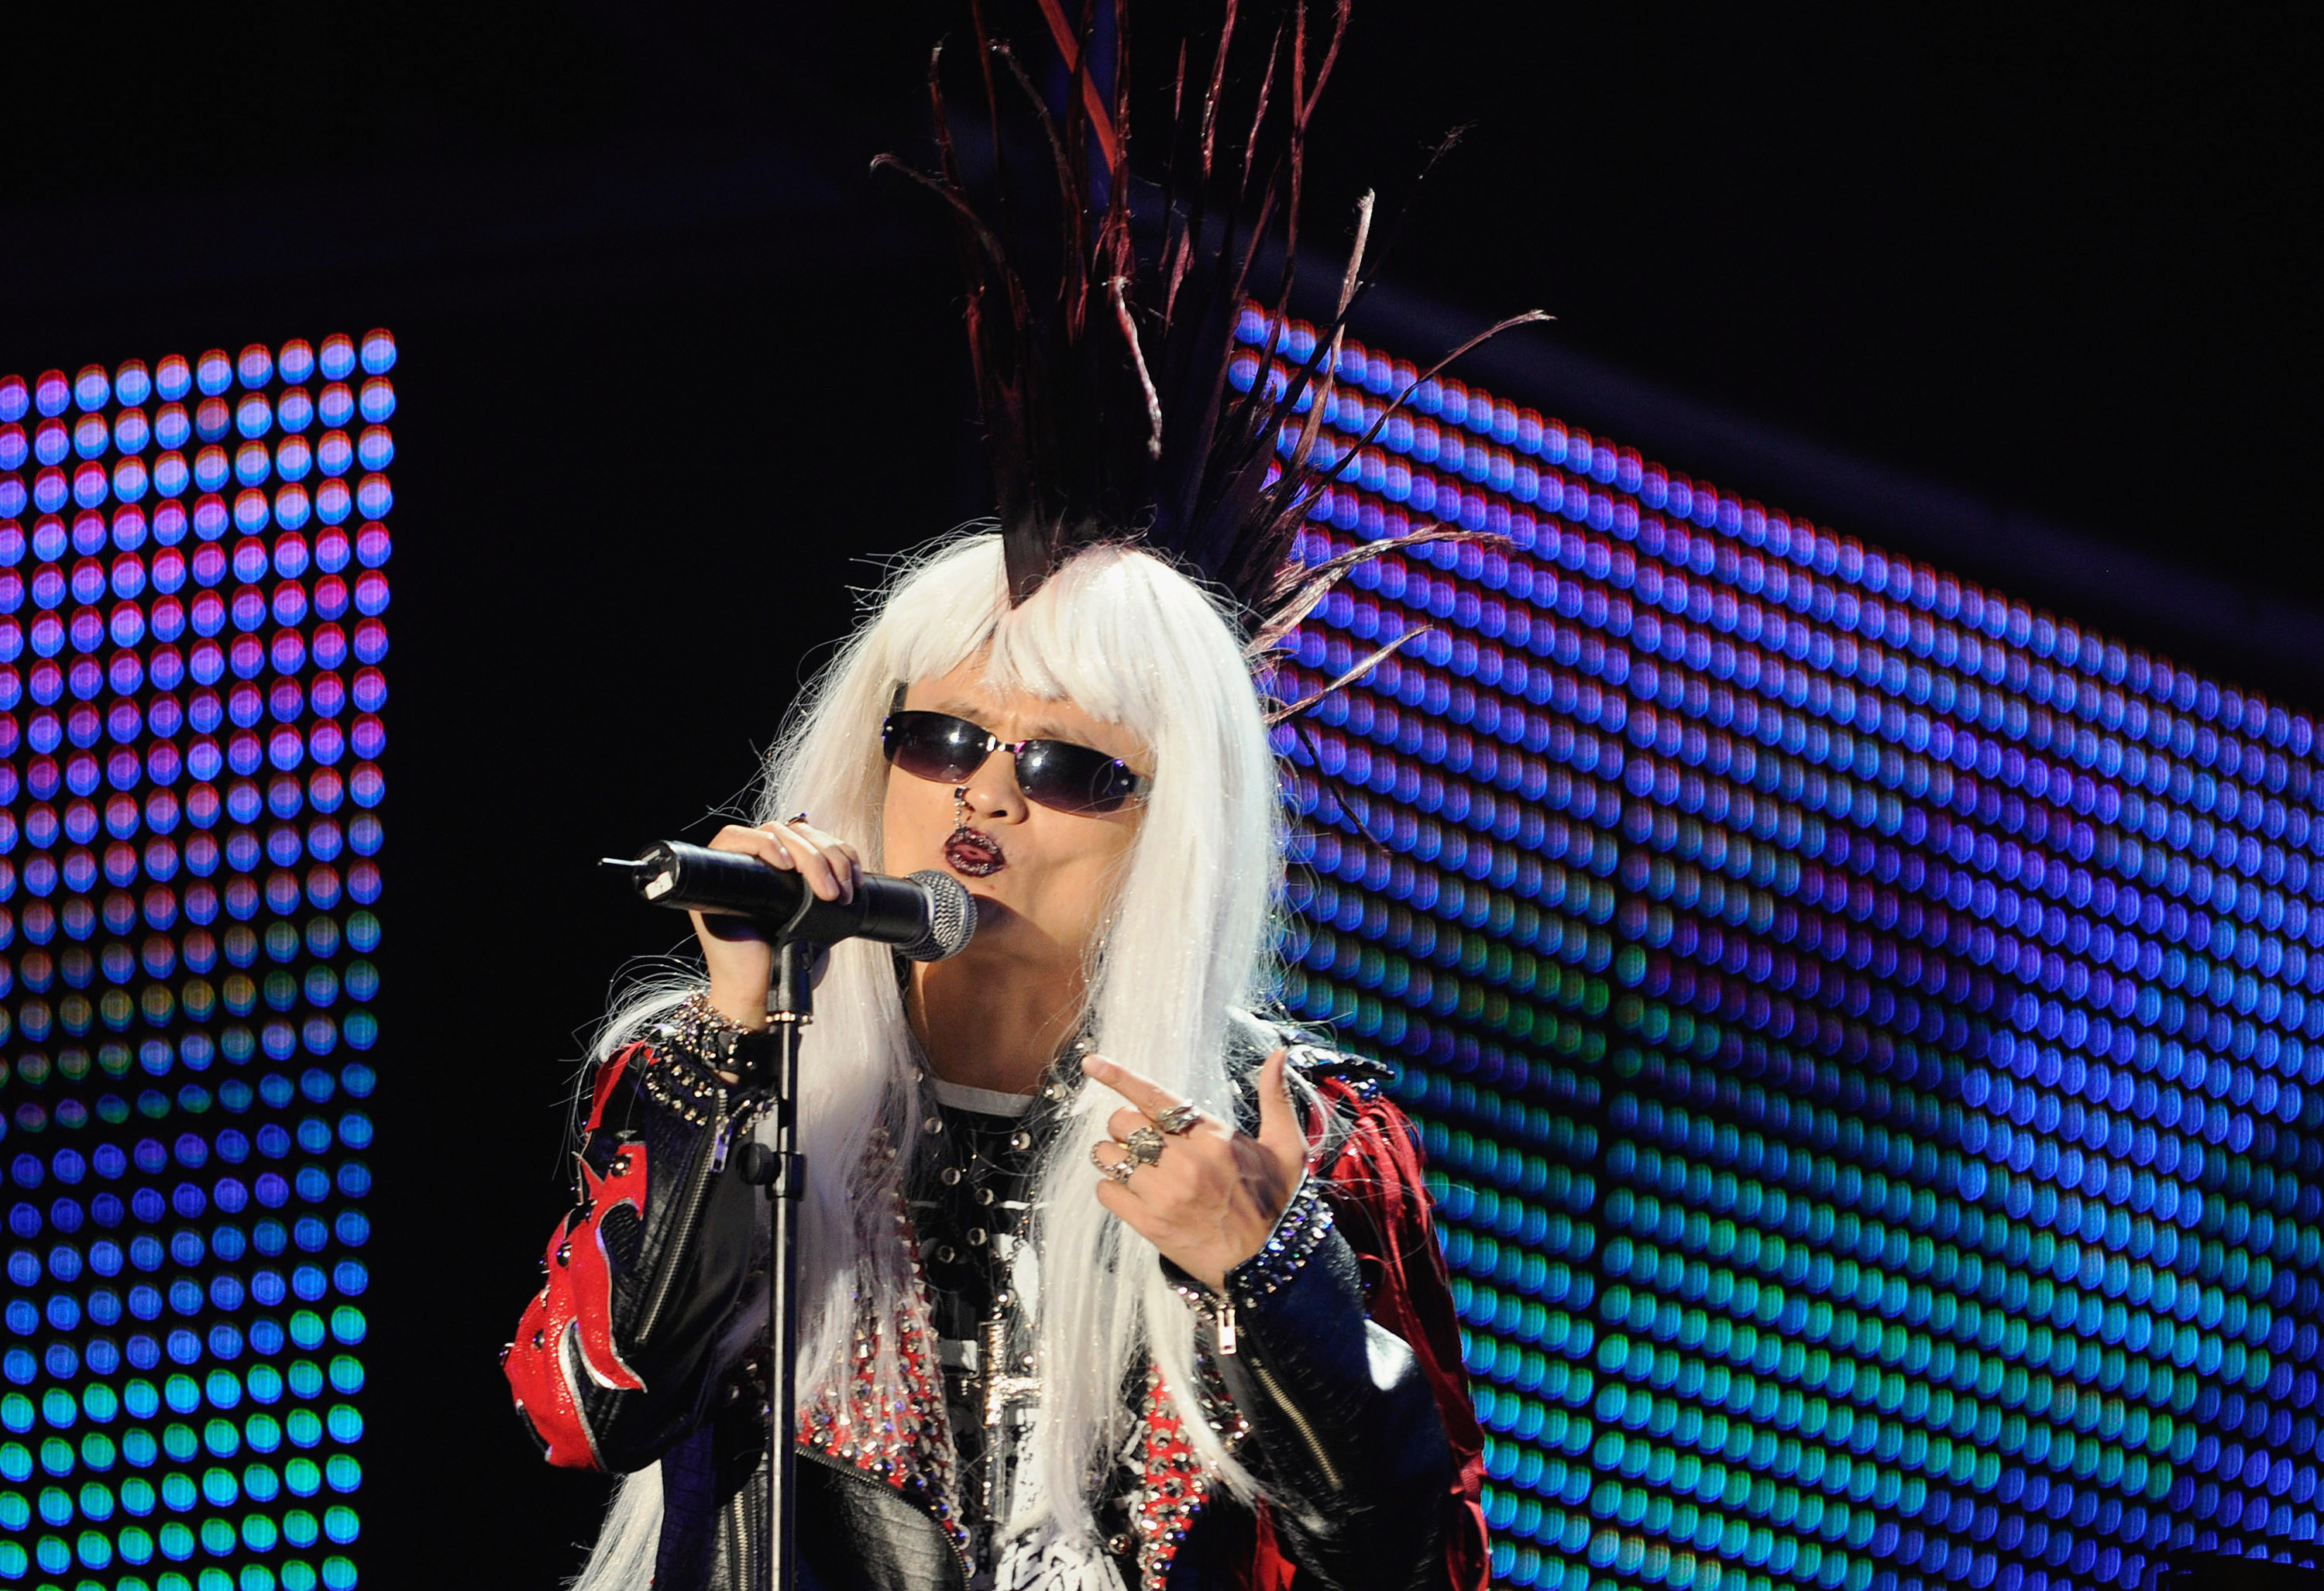 HANGZHOU, CHINA -  Alibaba Group Chairman and Chief Executive Officer Ma Yun dressed as a punk rocker performs during the 10th anniversary celebration of  Alibaba Group founding at Huanglong Sports Center on September 10, 2009 in Hangzhou, Zhejiang Province of China.  (Photo by ChinaFotoPress/Getty Images)